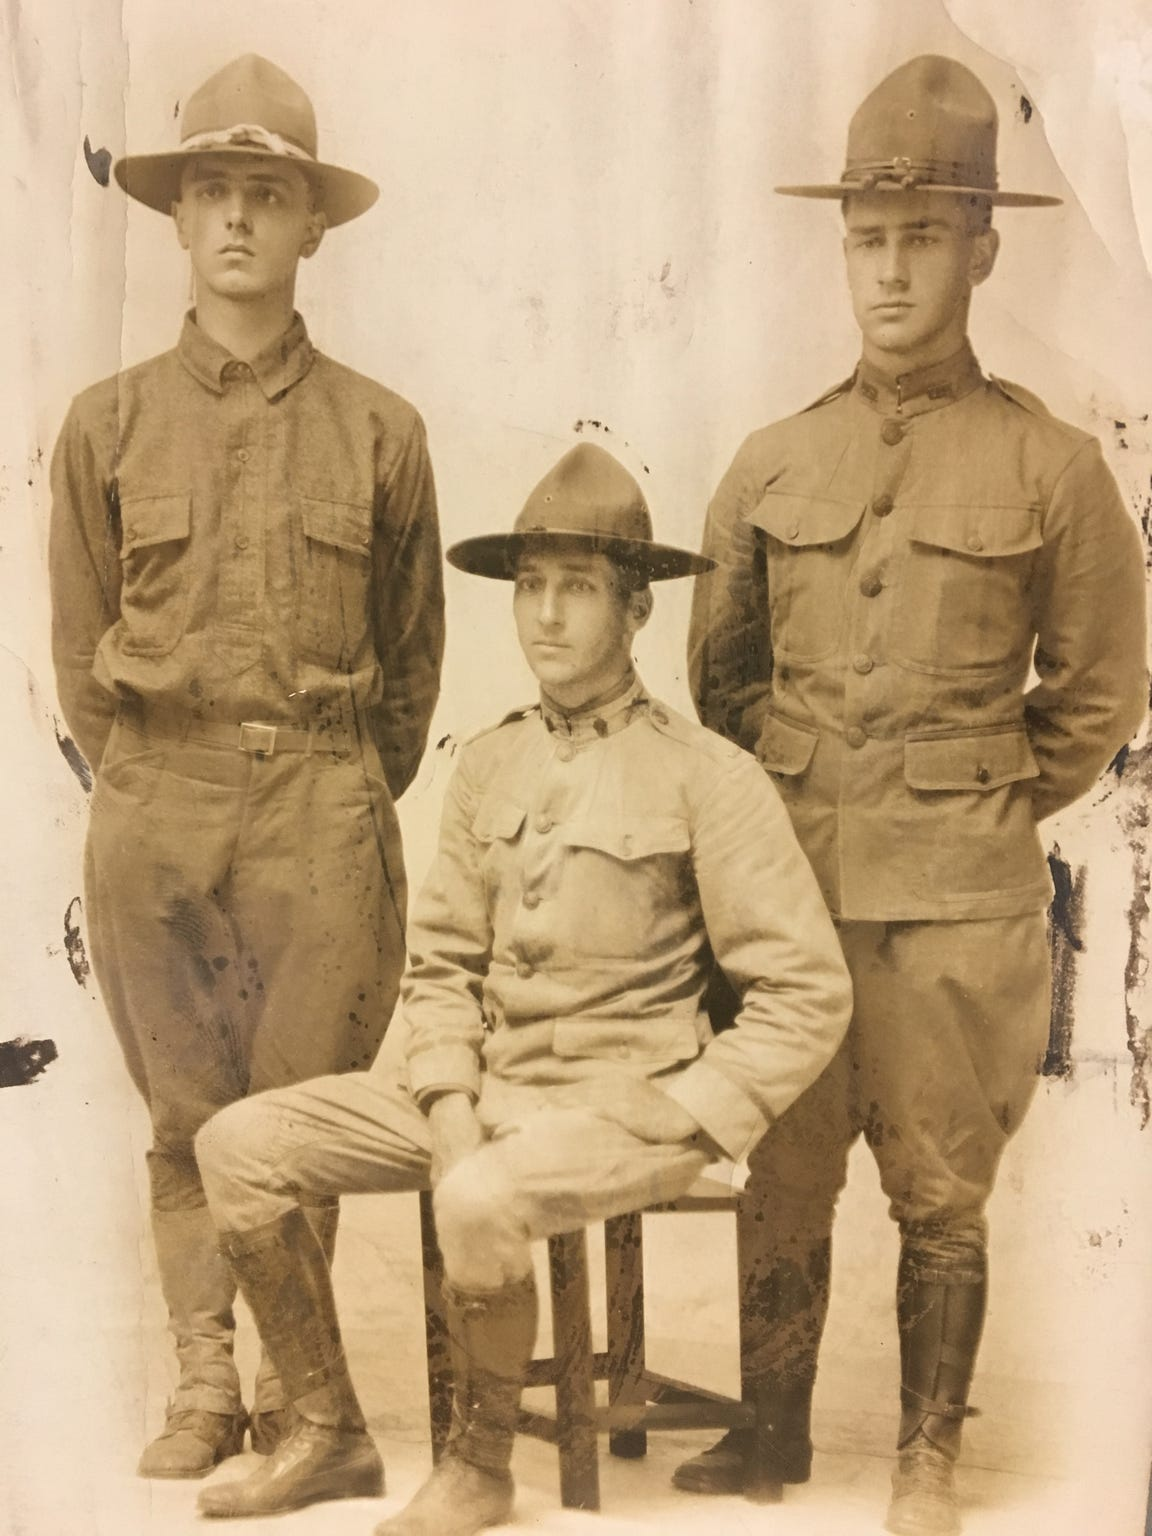 The Kreichbaum brothers of Chambersburg served during